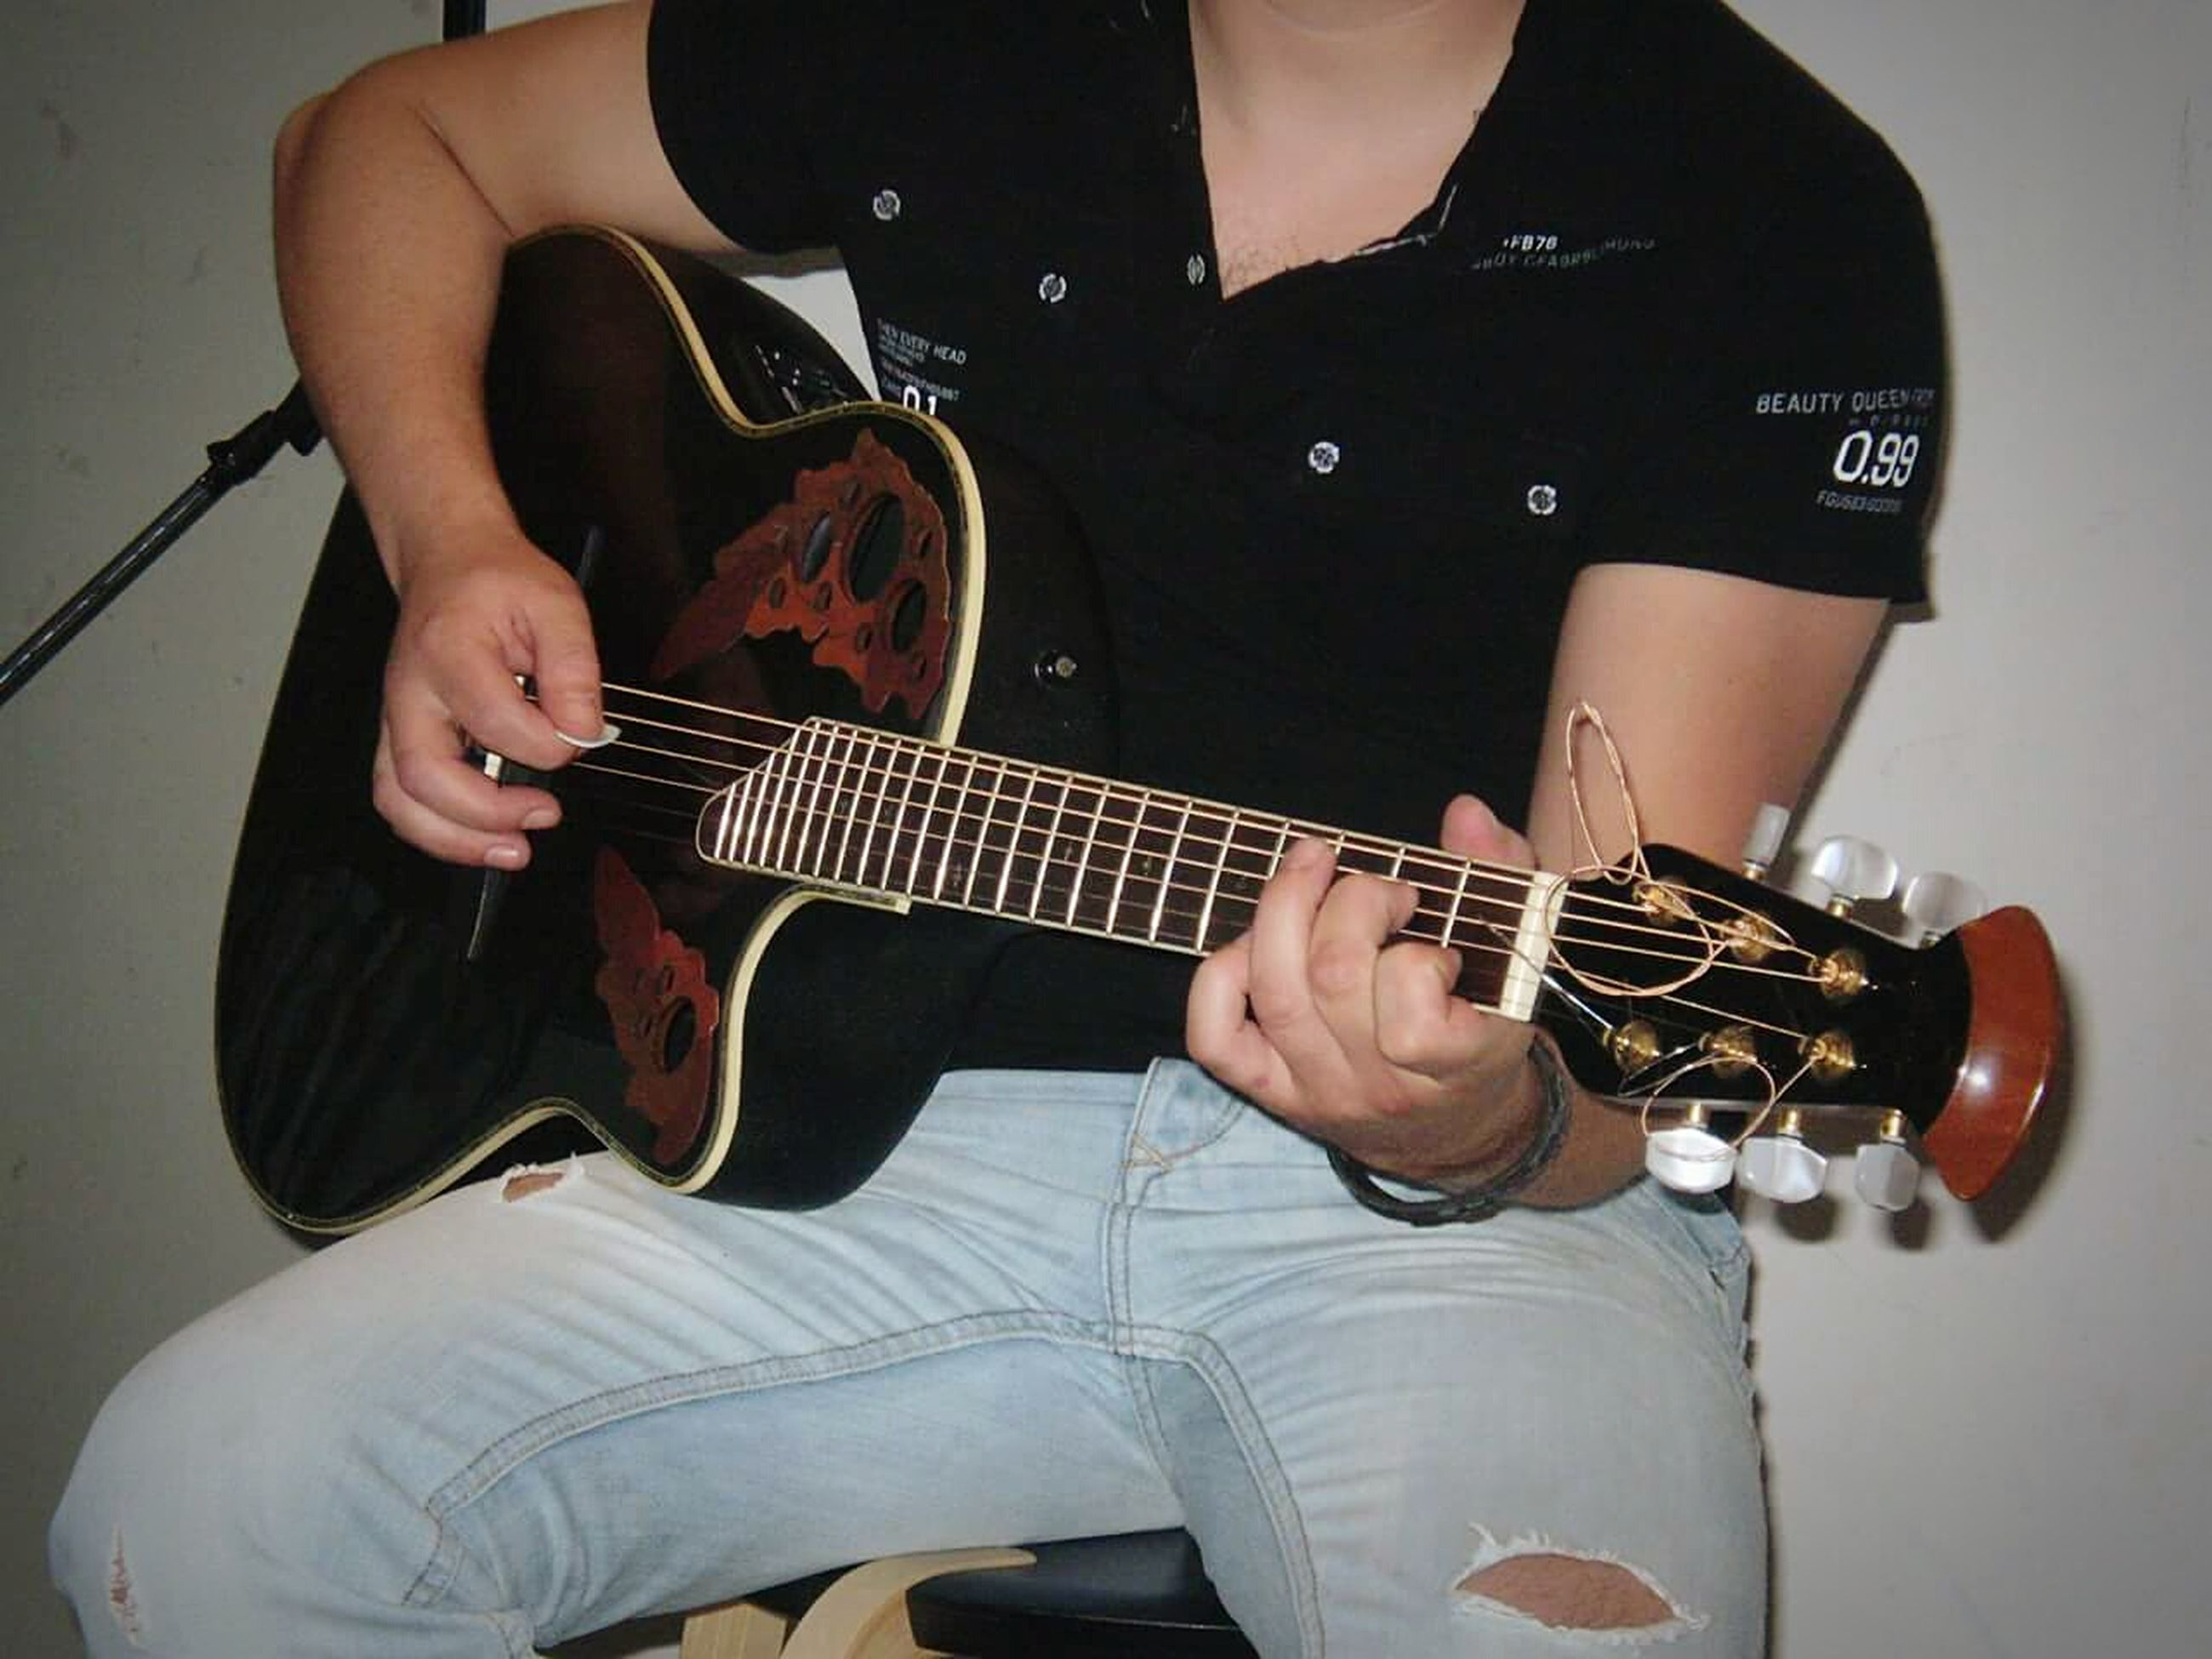 indoors, music, holding, musical instrument, technology, arts culture and entertainment, wireless technology, lifestyles, guitar, person, connection, leisure activity, musical equipment, playing, photography themes, smart phone, communication, mobile phone